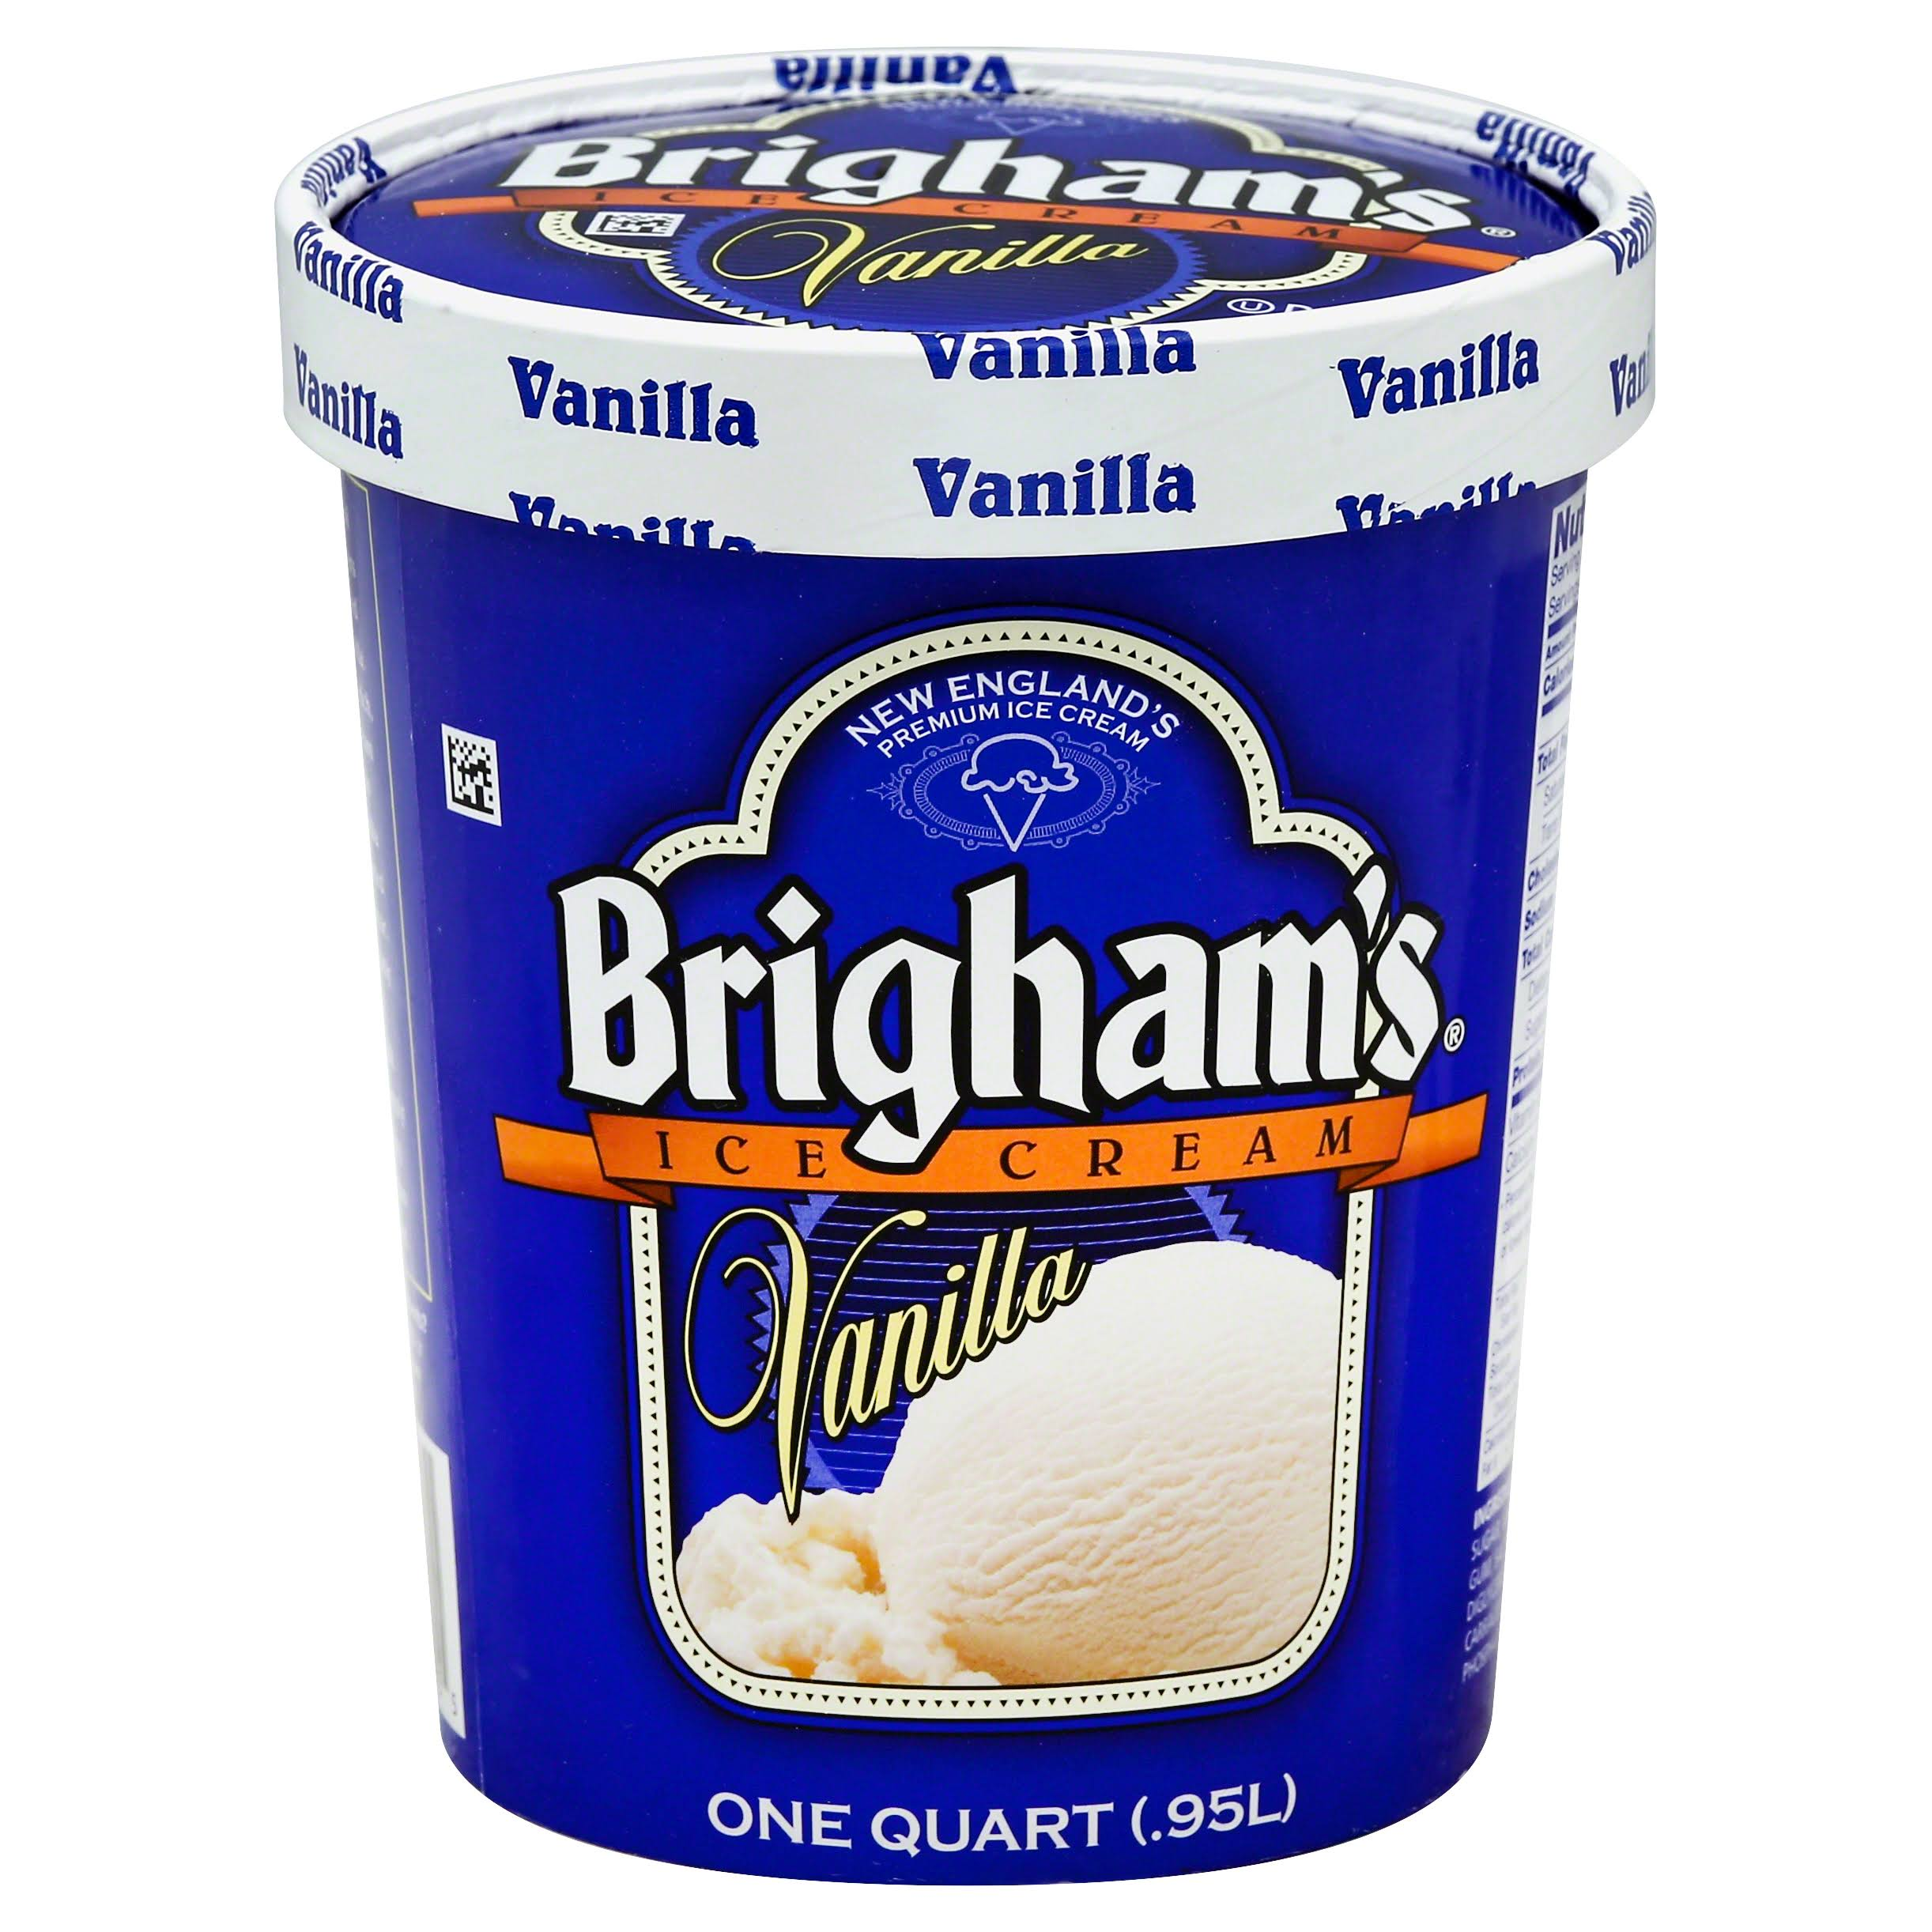 Brighams Ice Cream, Vanilla - 1 qt